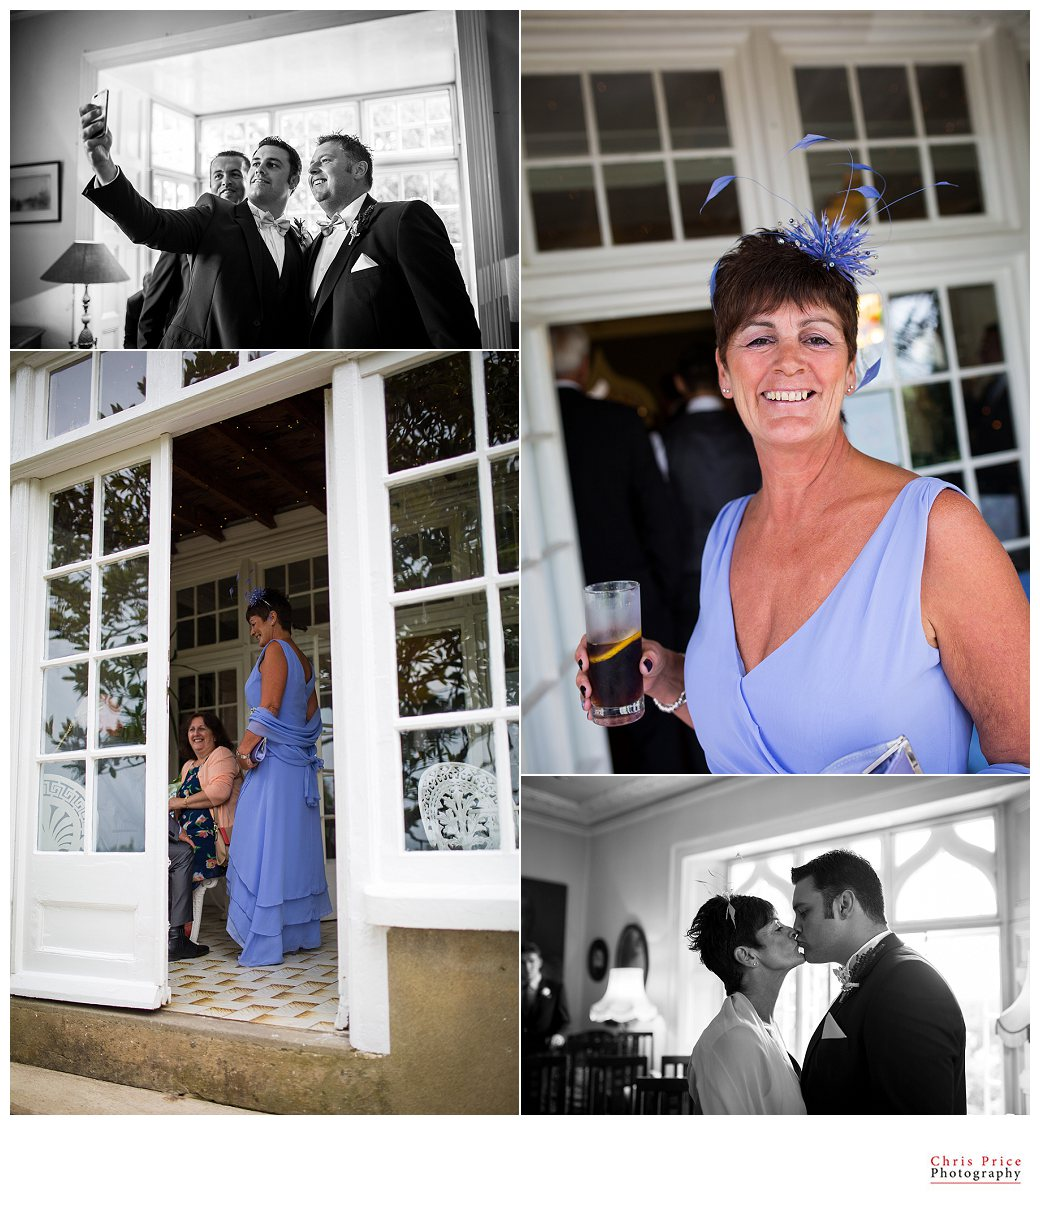 Chris Price Photography, Wedding Photography, Pembrokeshire Weddings, Wales